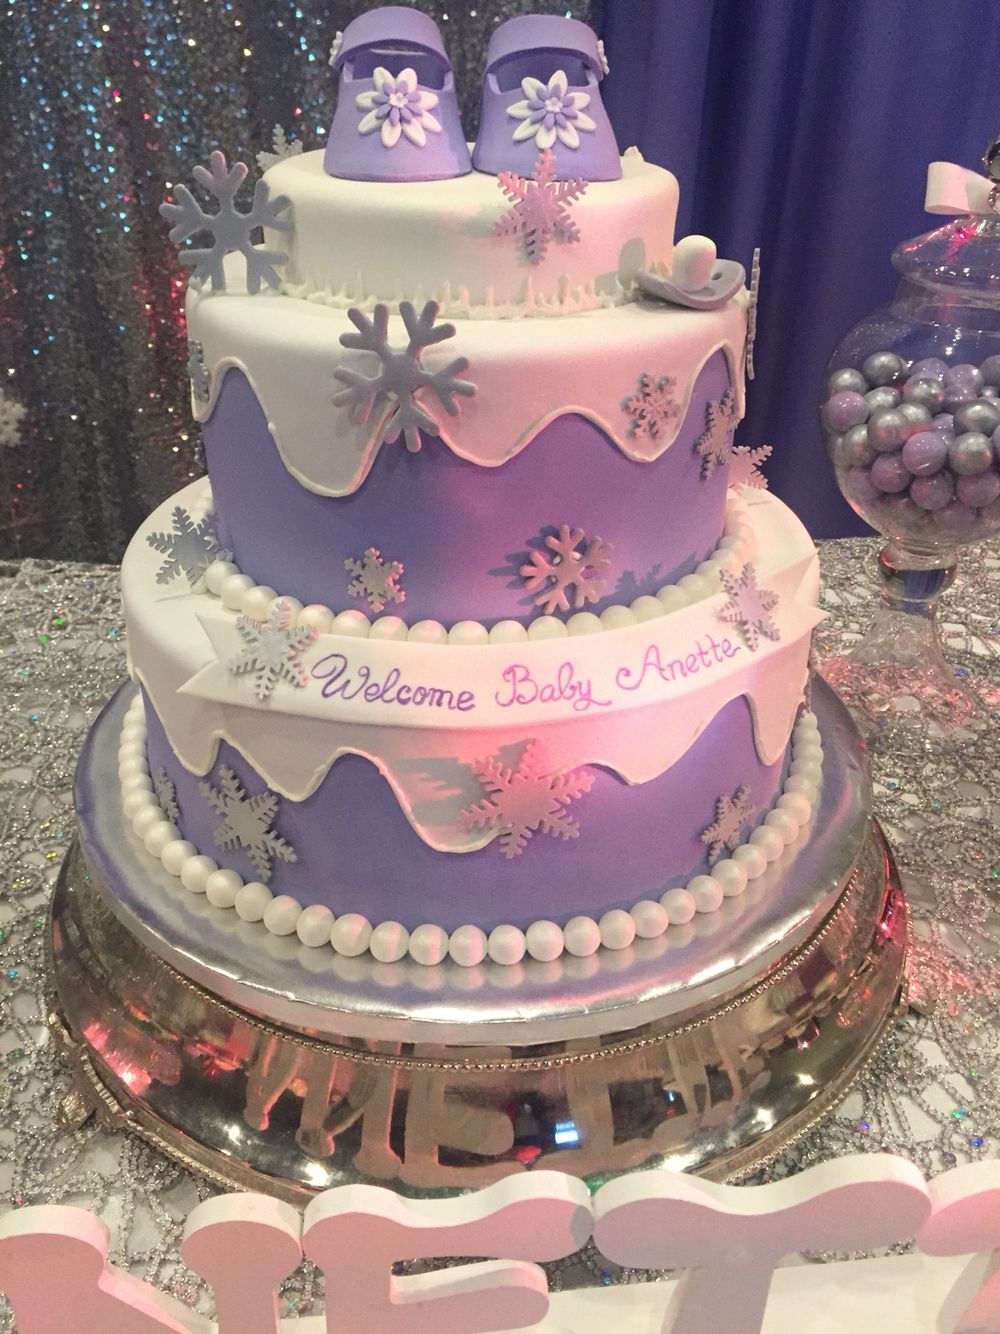 Purple snowflake winter wonderland baby shower cake